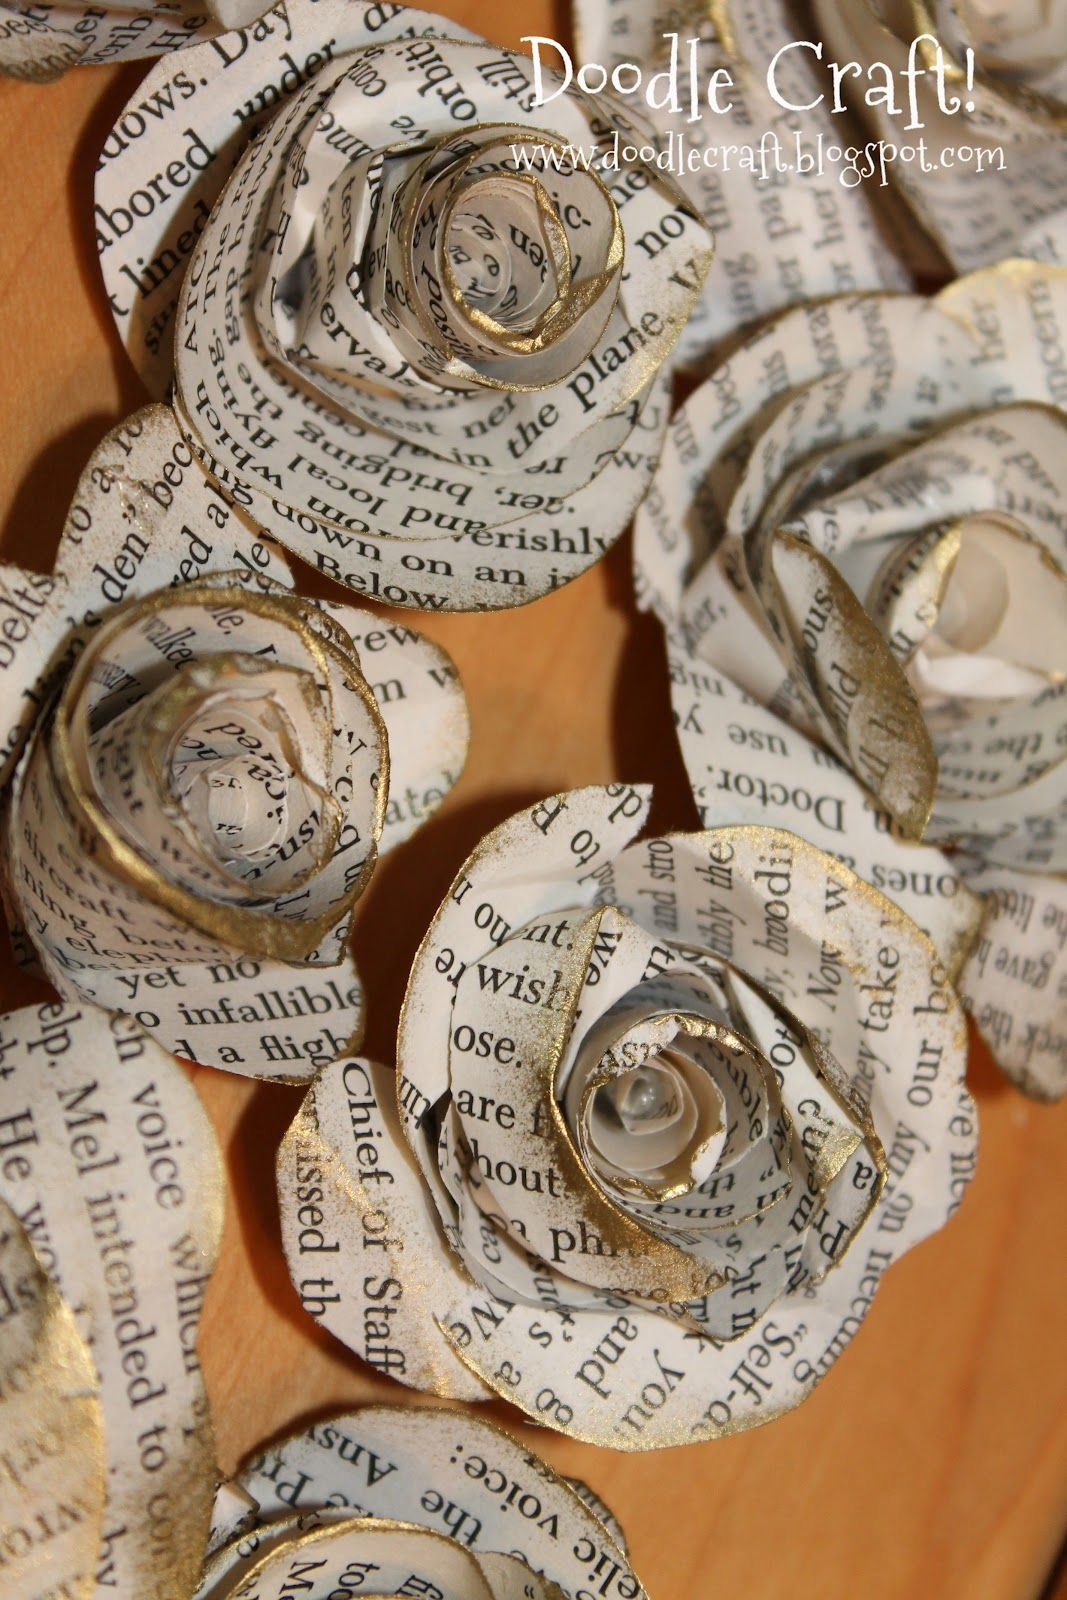 How to make rosettes out of paper - Diy Upcycled Book Page Rosettes Great Tutorial With Step Photos Showing How To Turn Pages Of Old Books And Paperbacks Into Paper Roses With Gold Edges